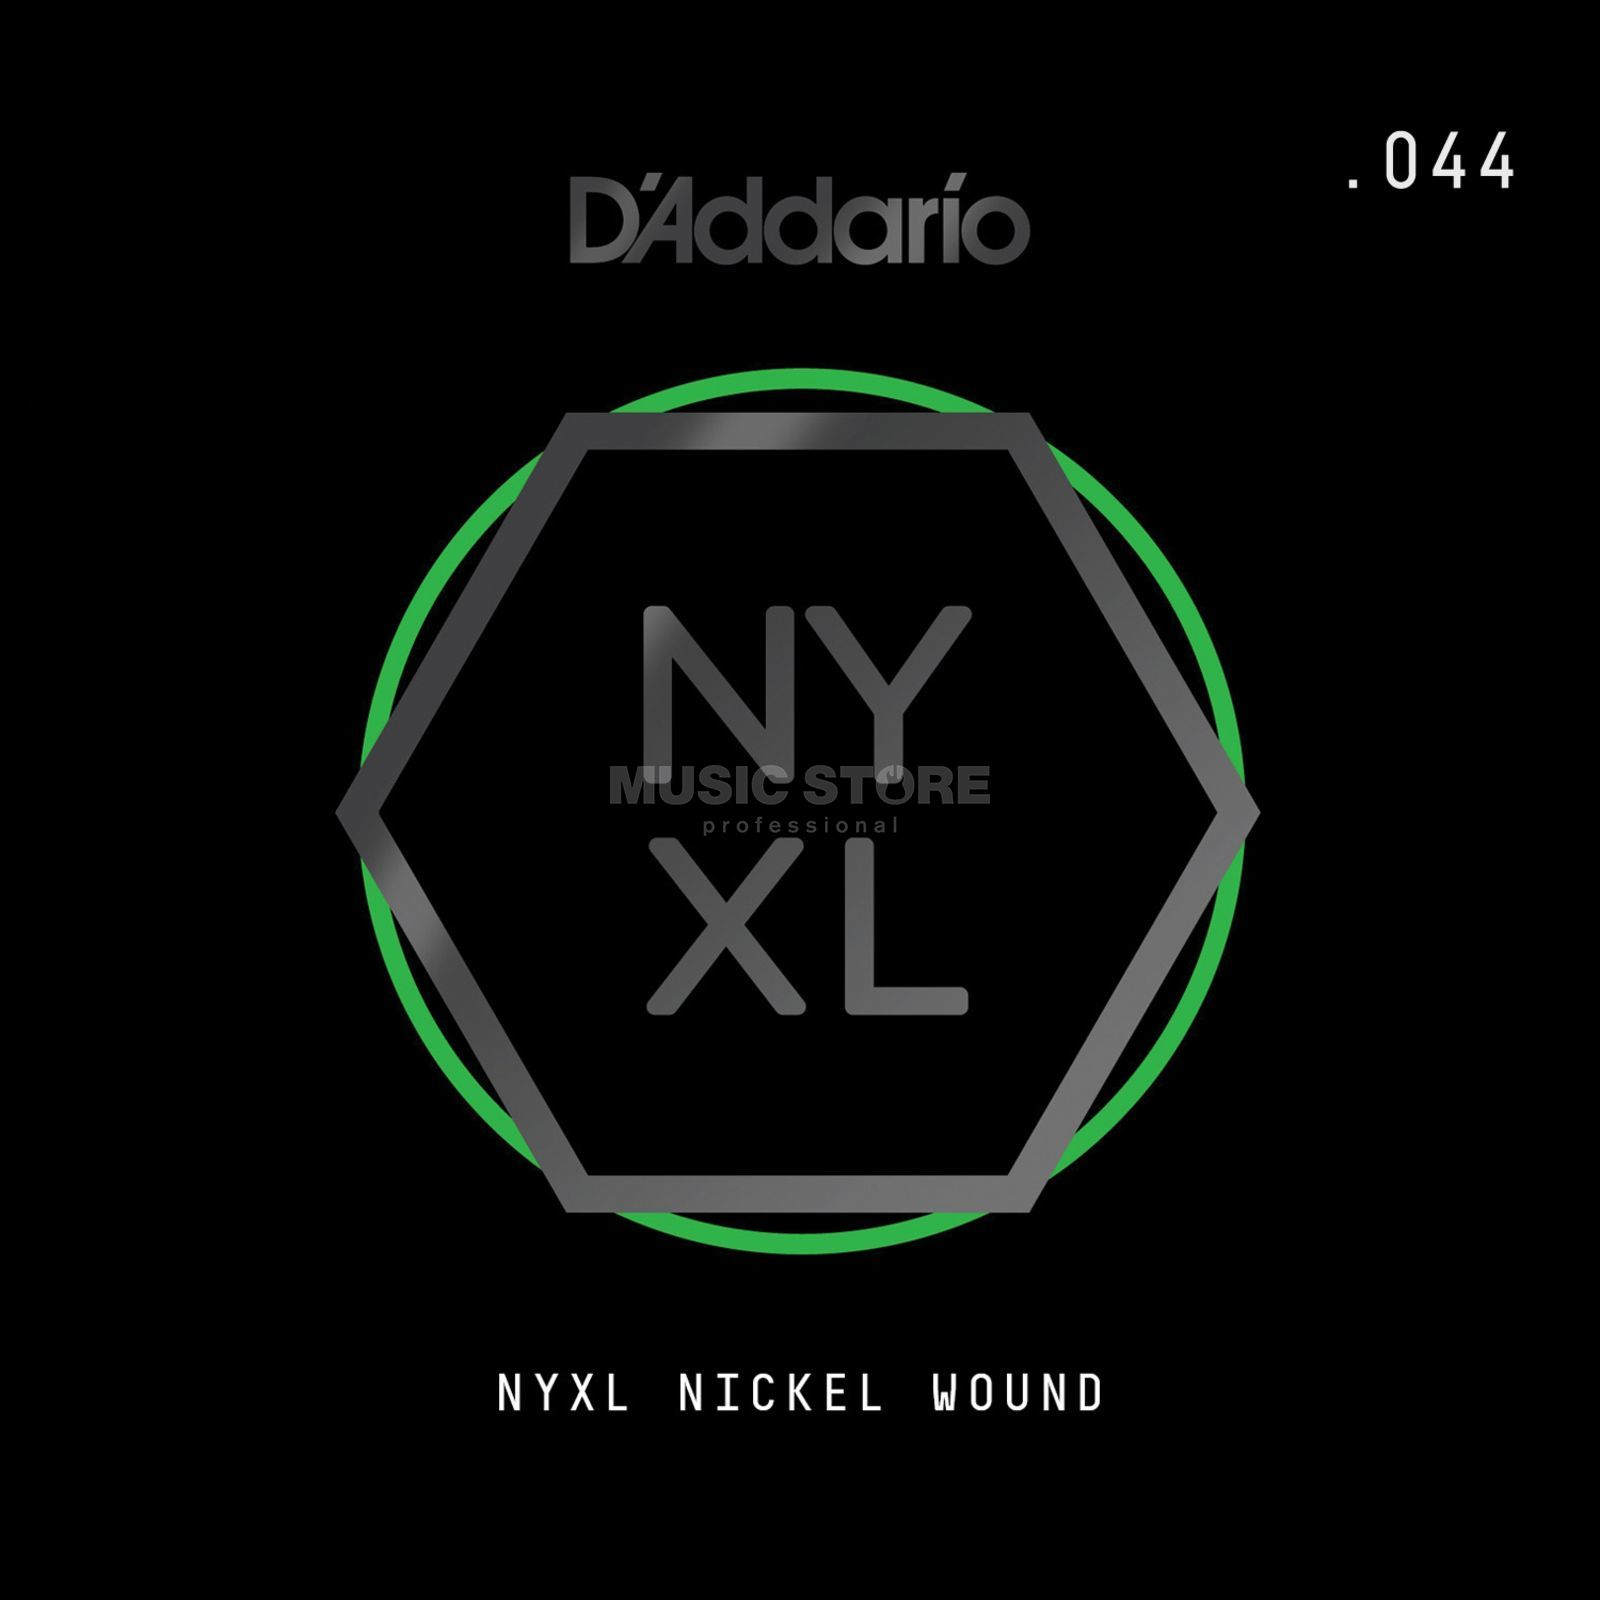 D'Addario NYNW044 Single String Nickel Wound Product Image